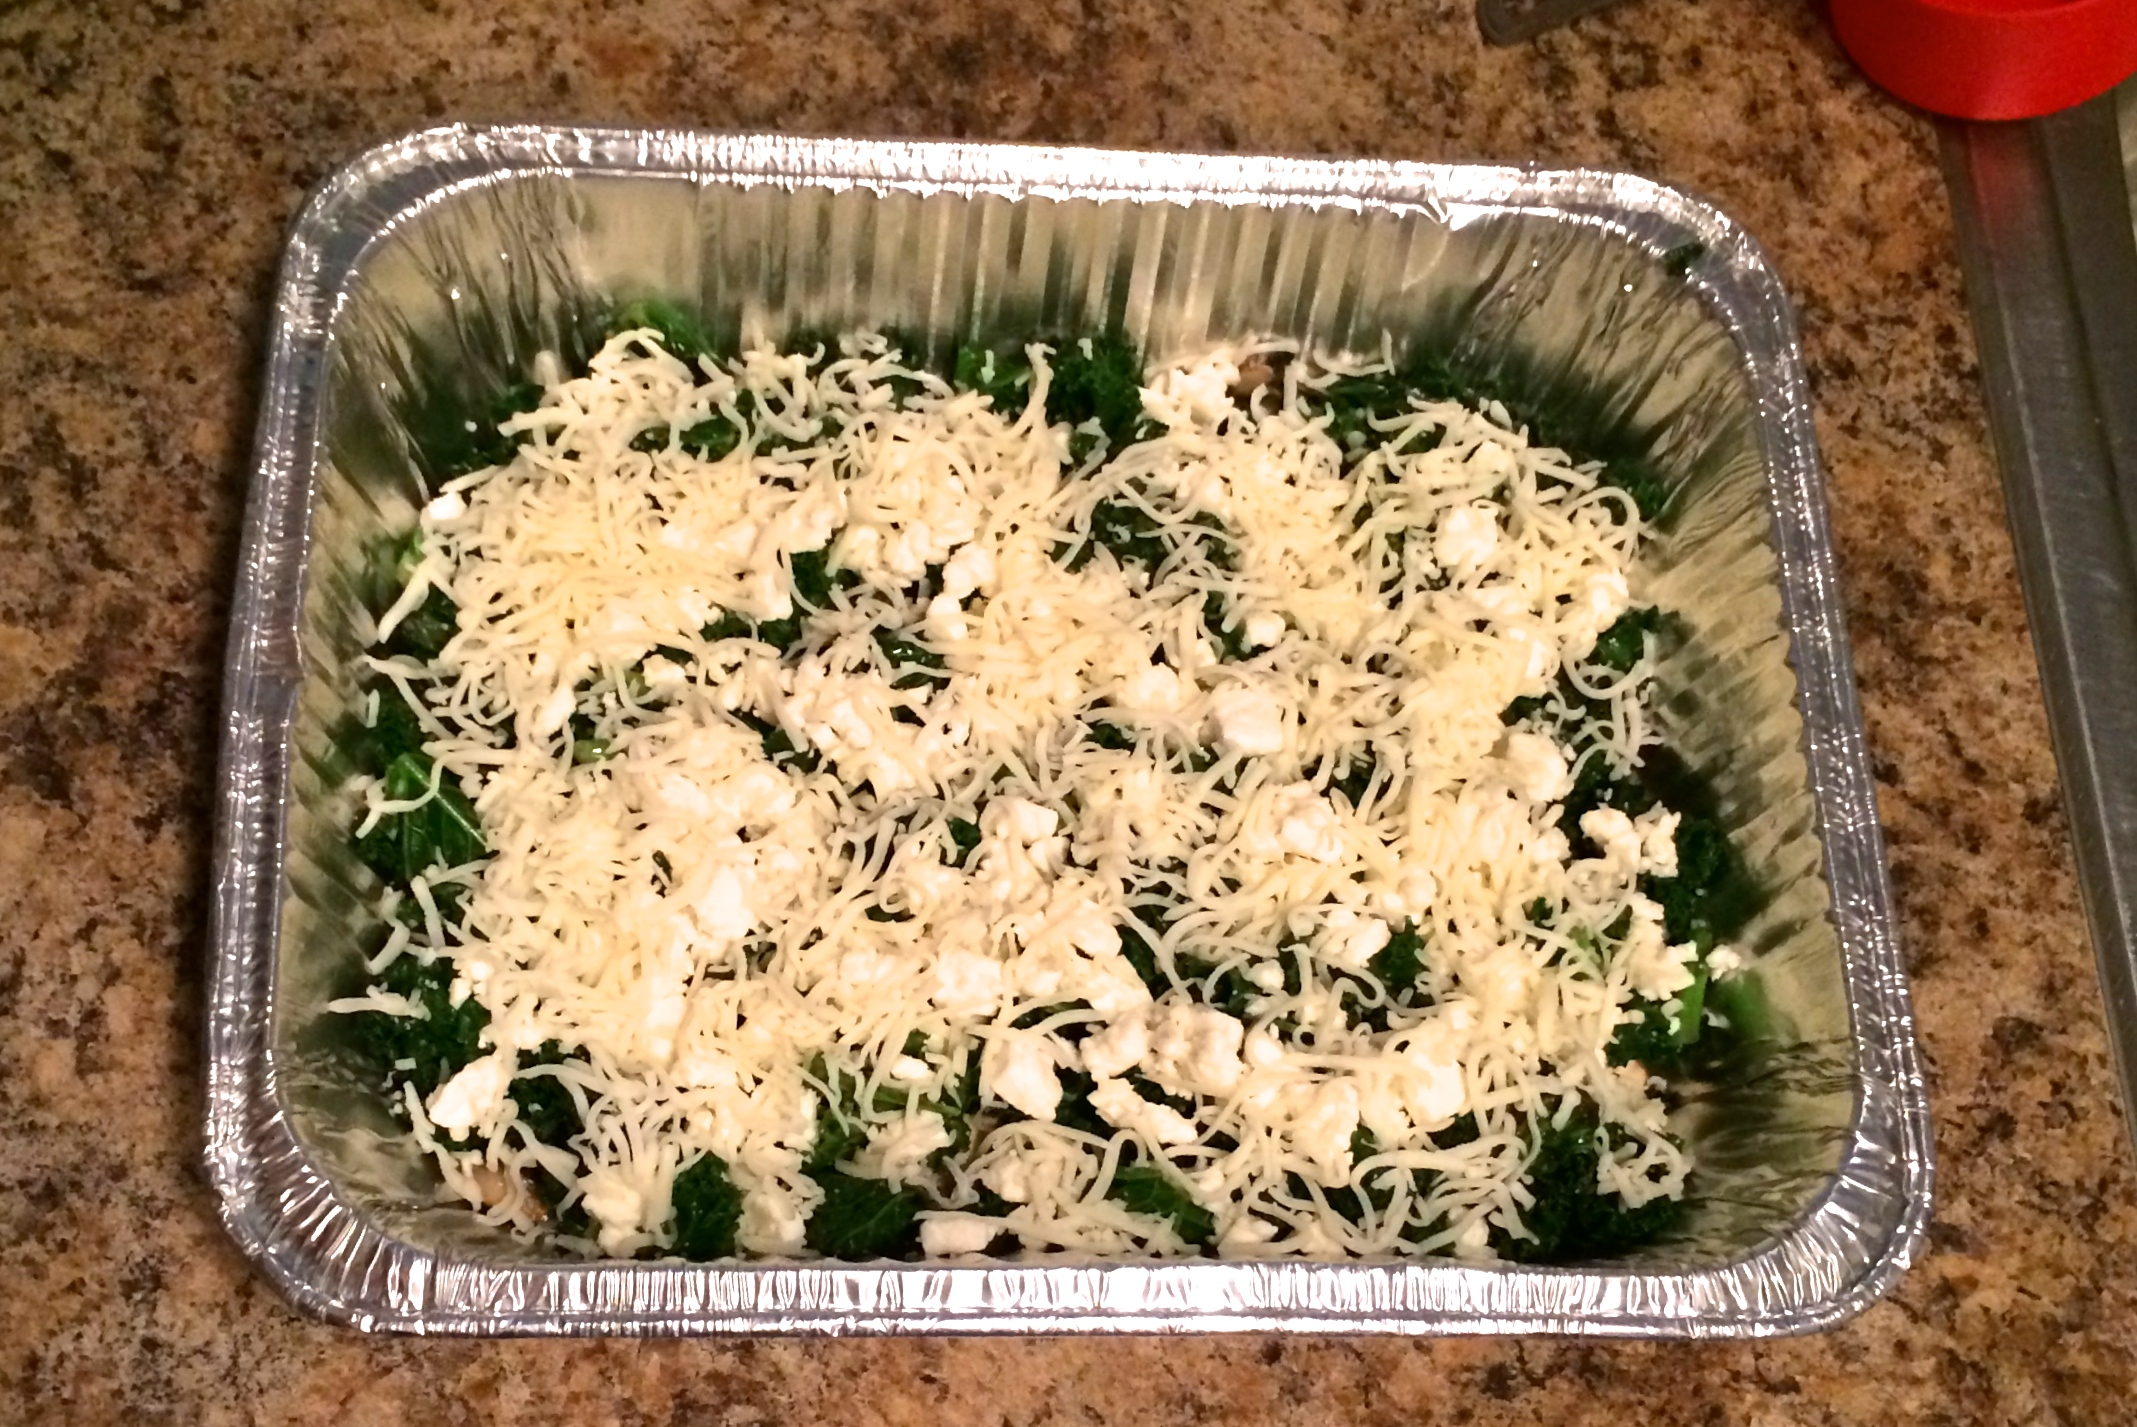 ... the top of the casserole shows a good mixture of mushrooms and kale